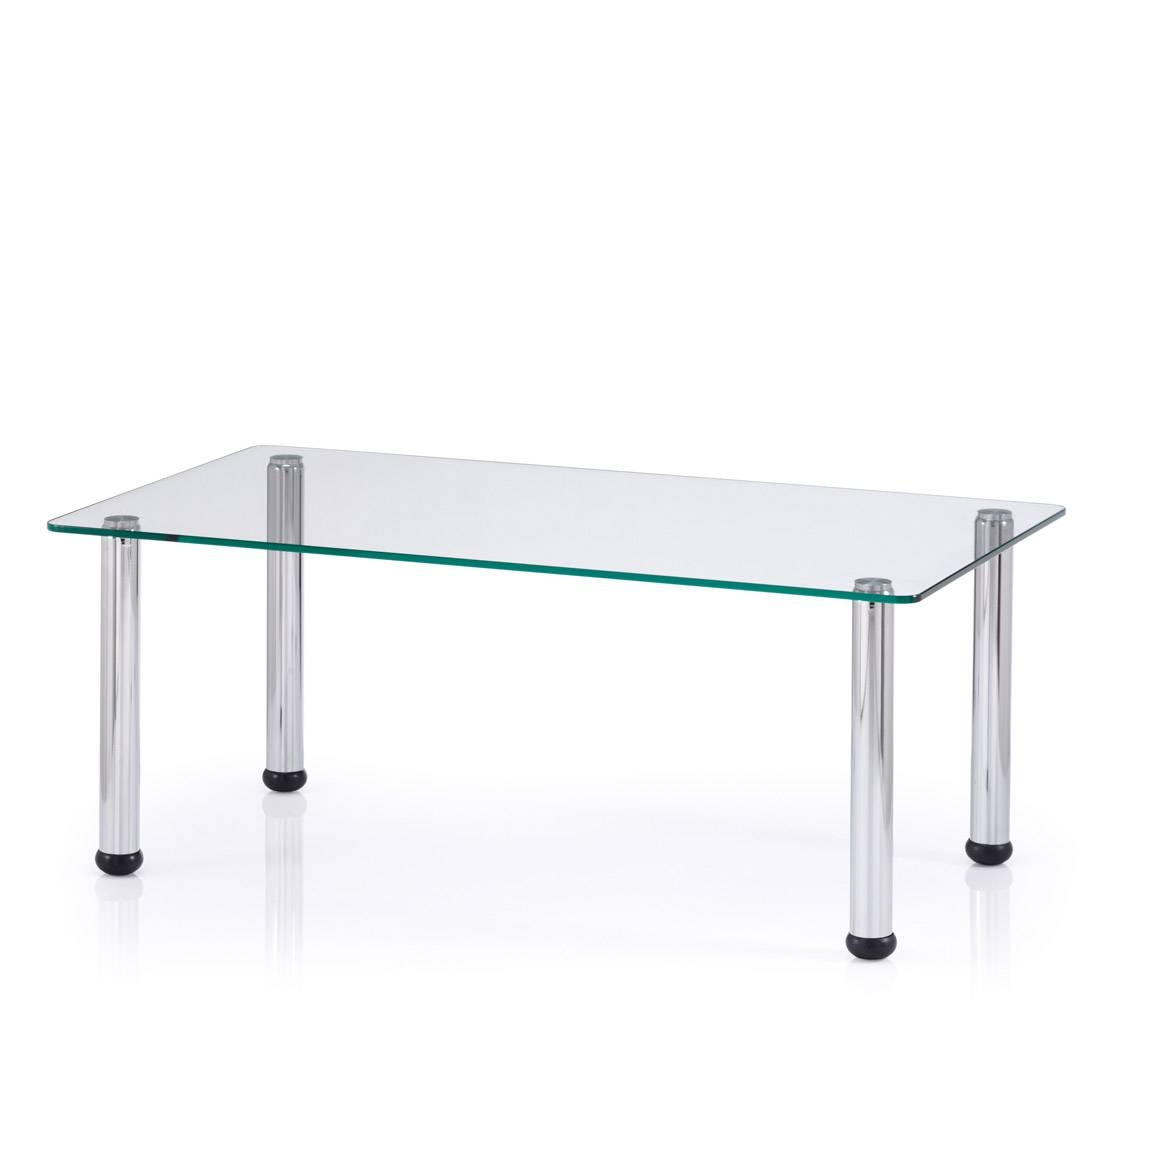 Swift - Glass Coffee Table inside Rectangle Glass Coffee Table (Image 15 of 15)